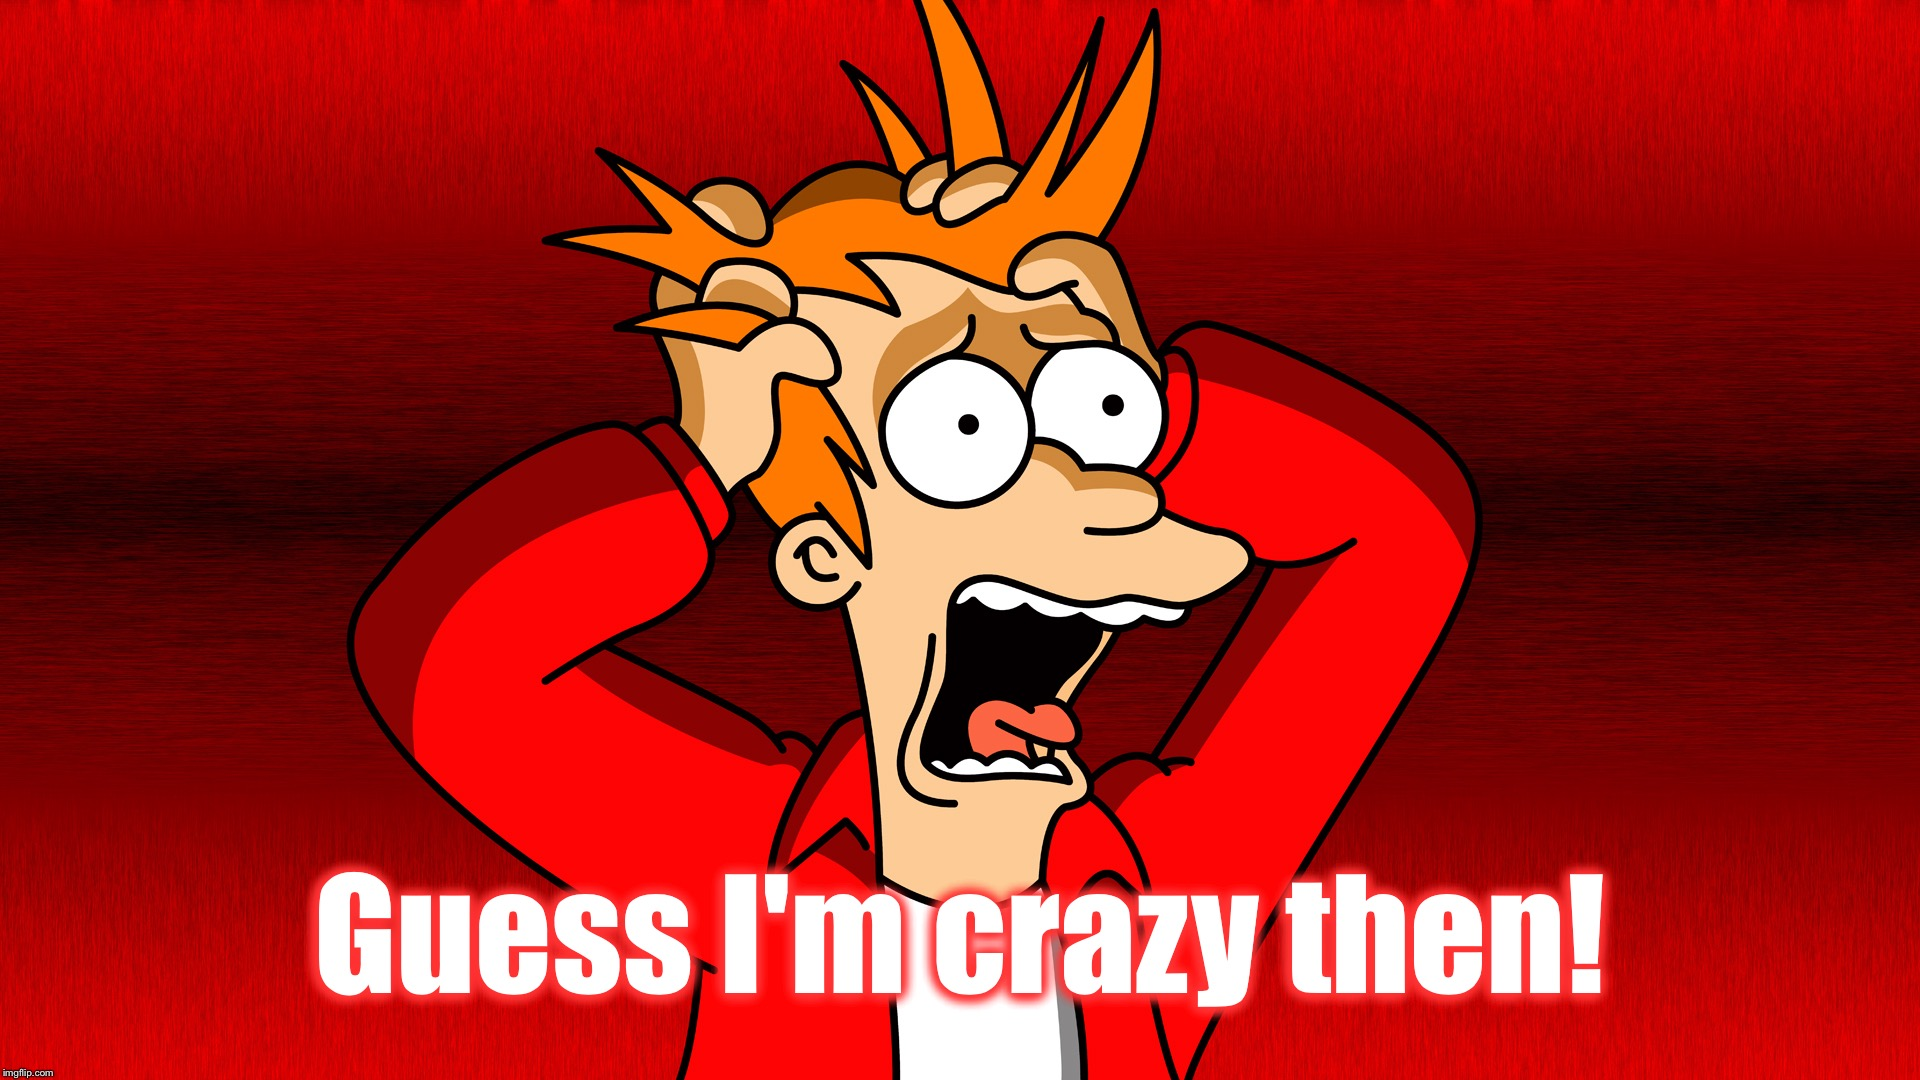 Fry Panic | Guess I'm crazy then! | image tagged in fry panic | made w/ Imgflip meme maker